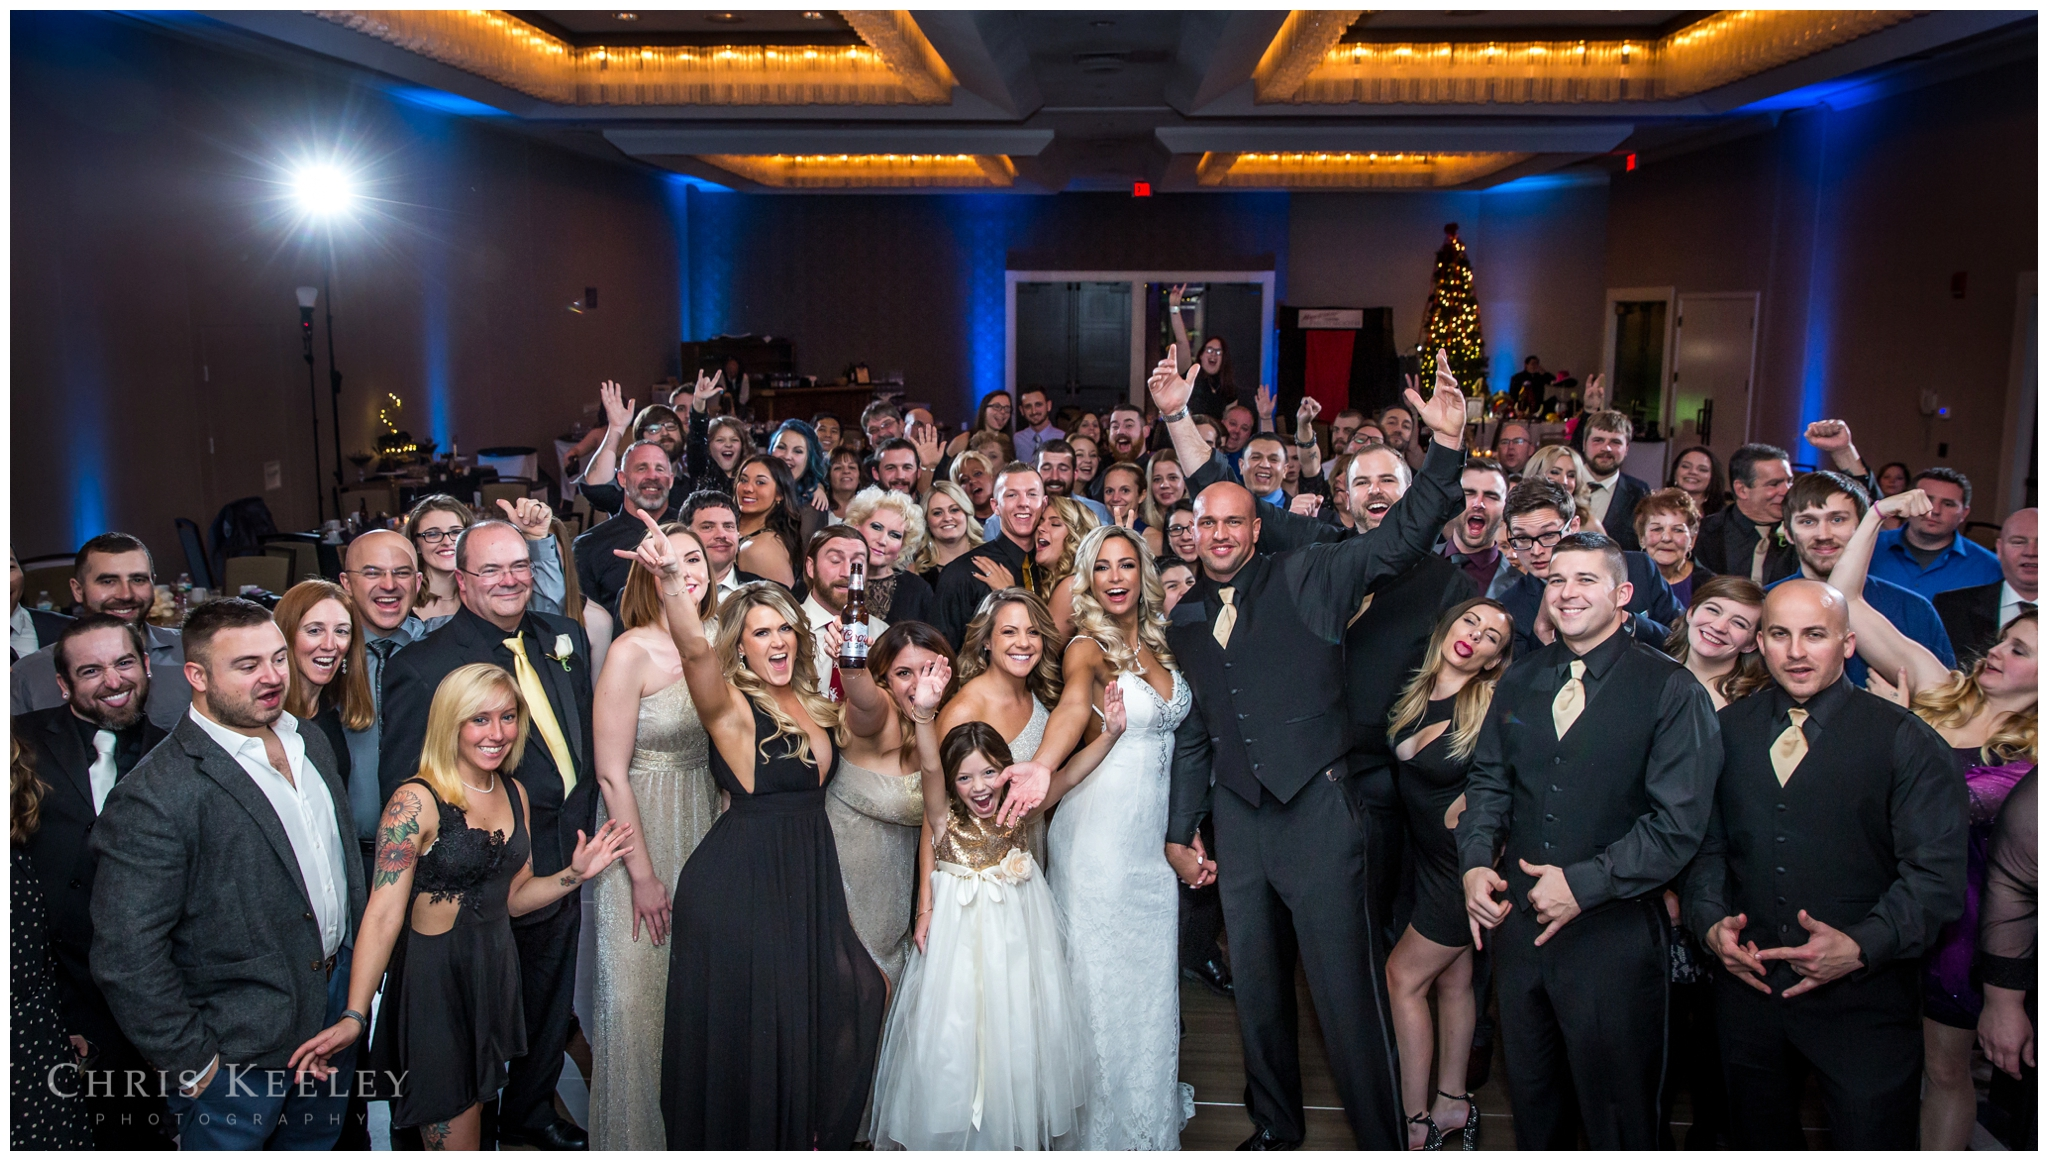 new-years-eve-wedding-photography-manchester-new-hampshire-01-2.jpg